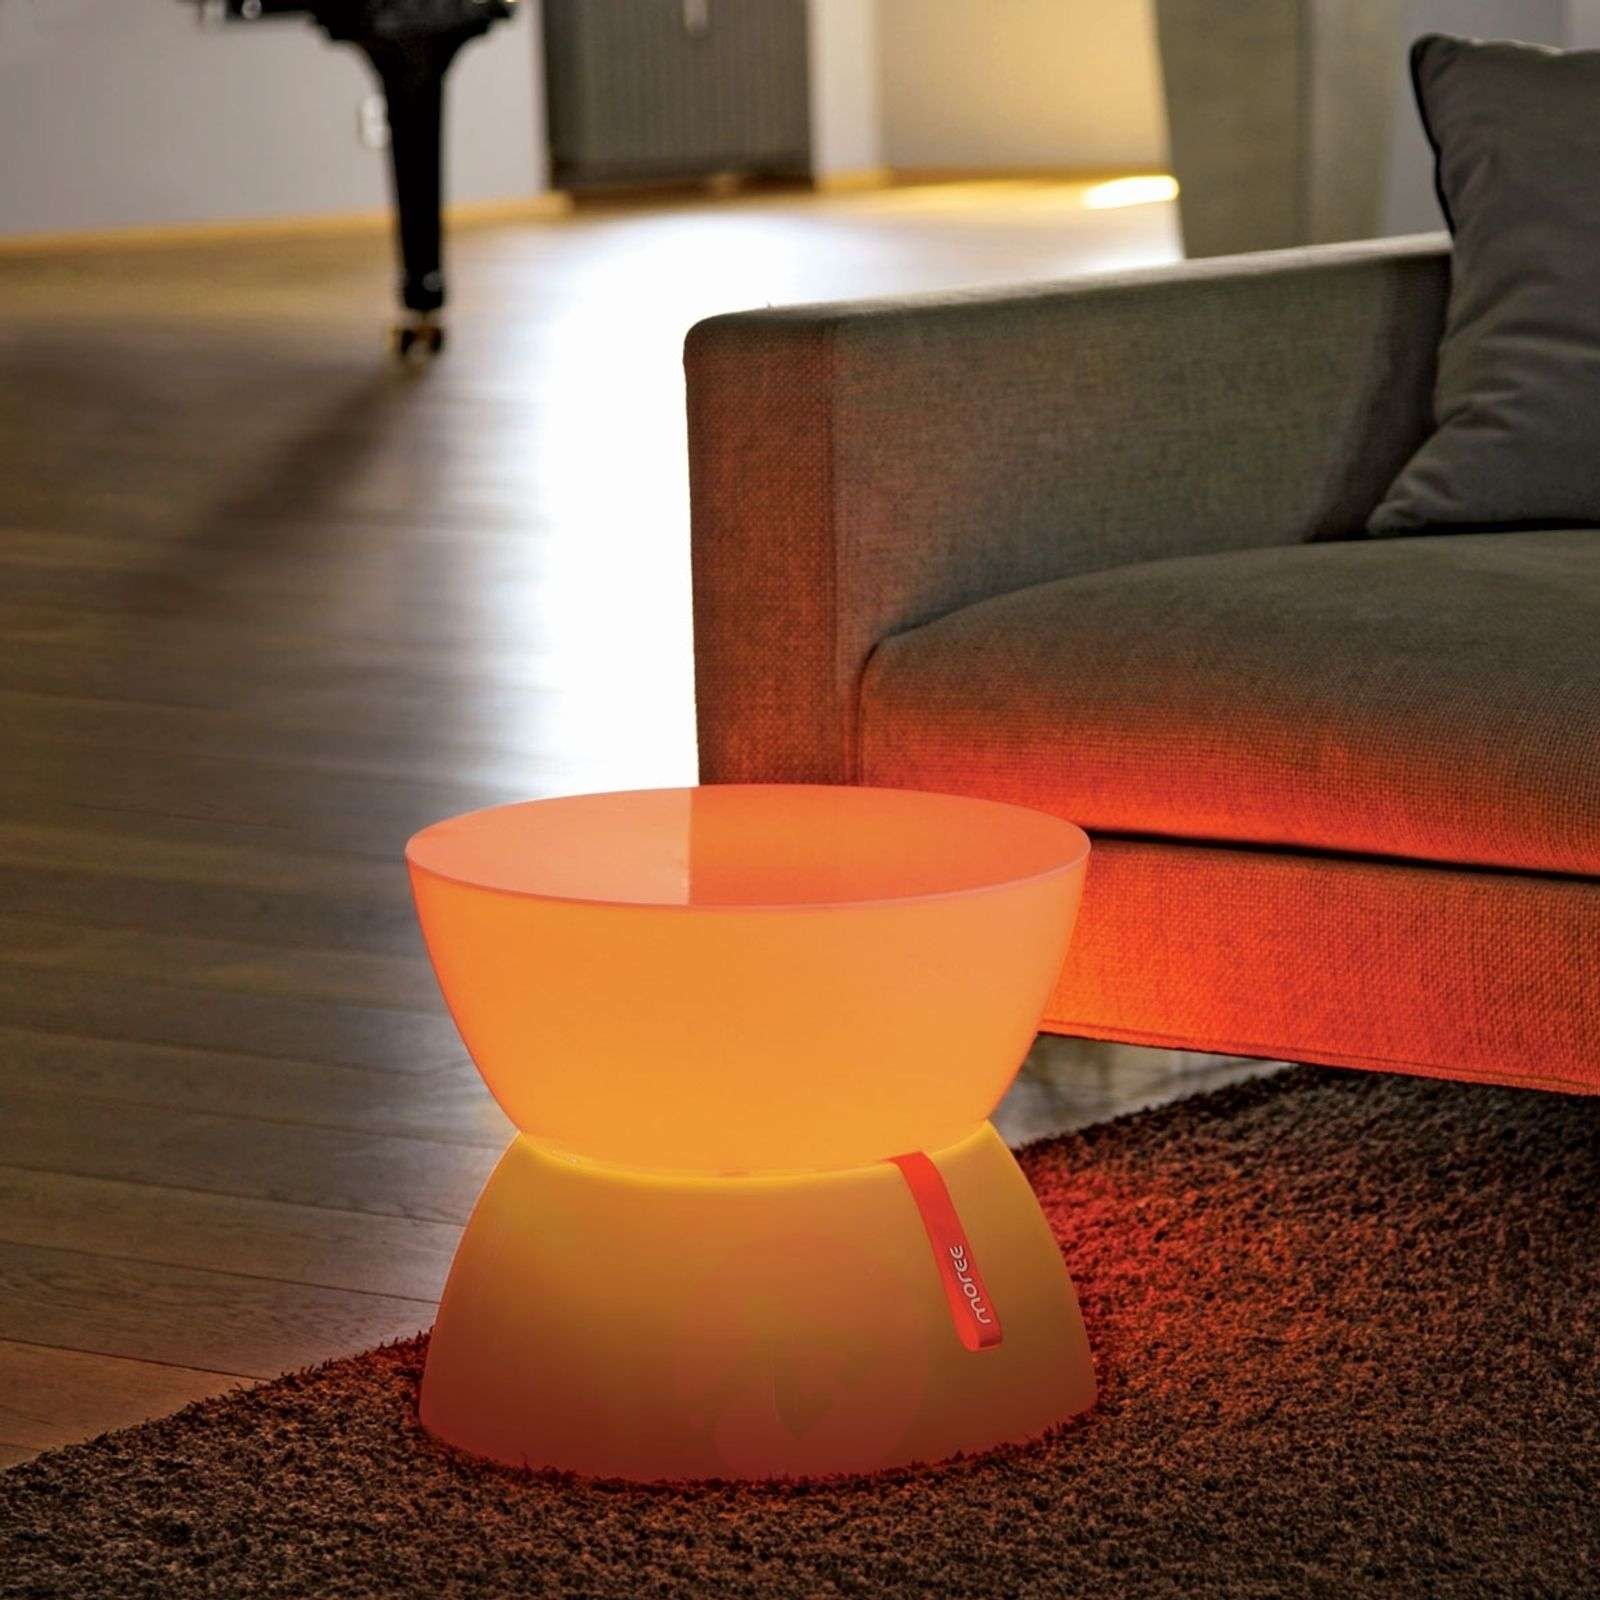 Bedienbare LED decoratieve lamp Lounge mini-6537014-01